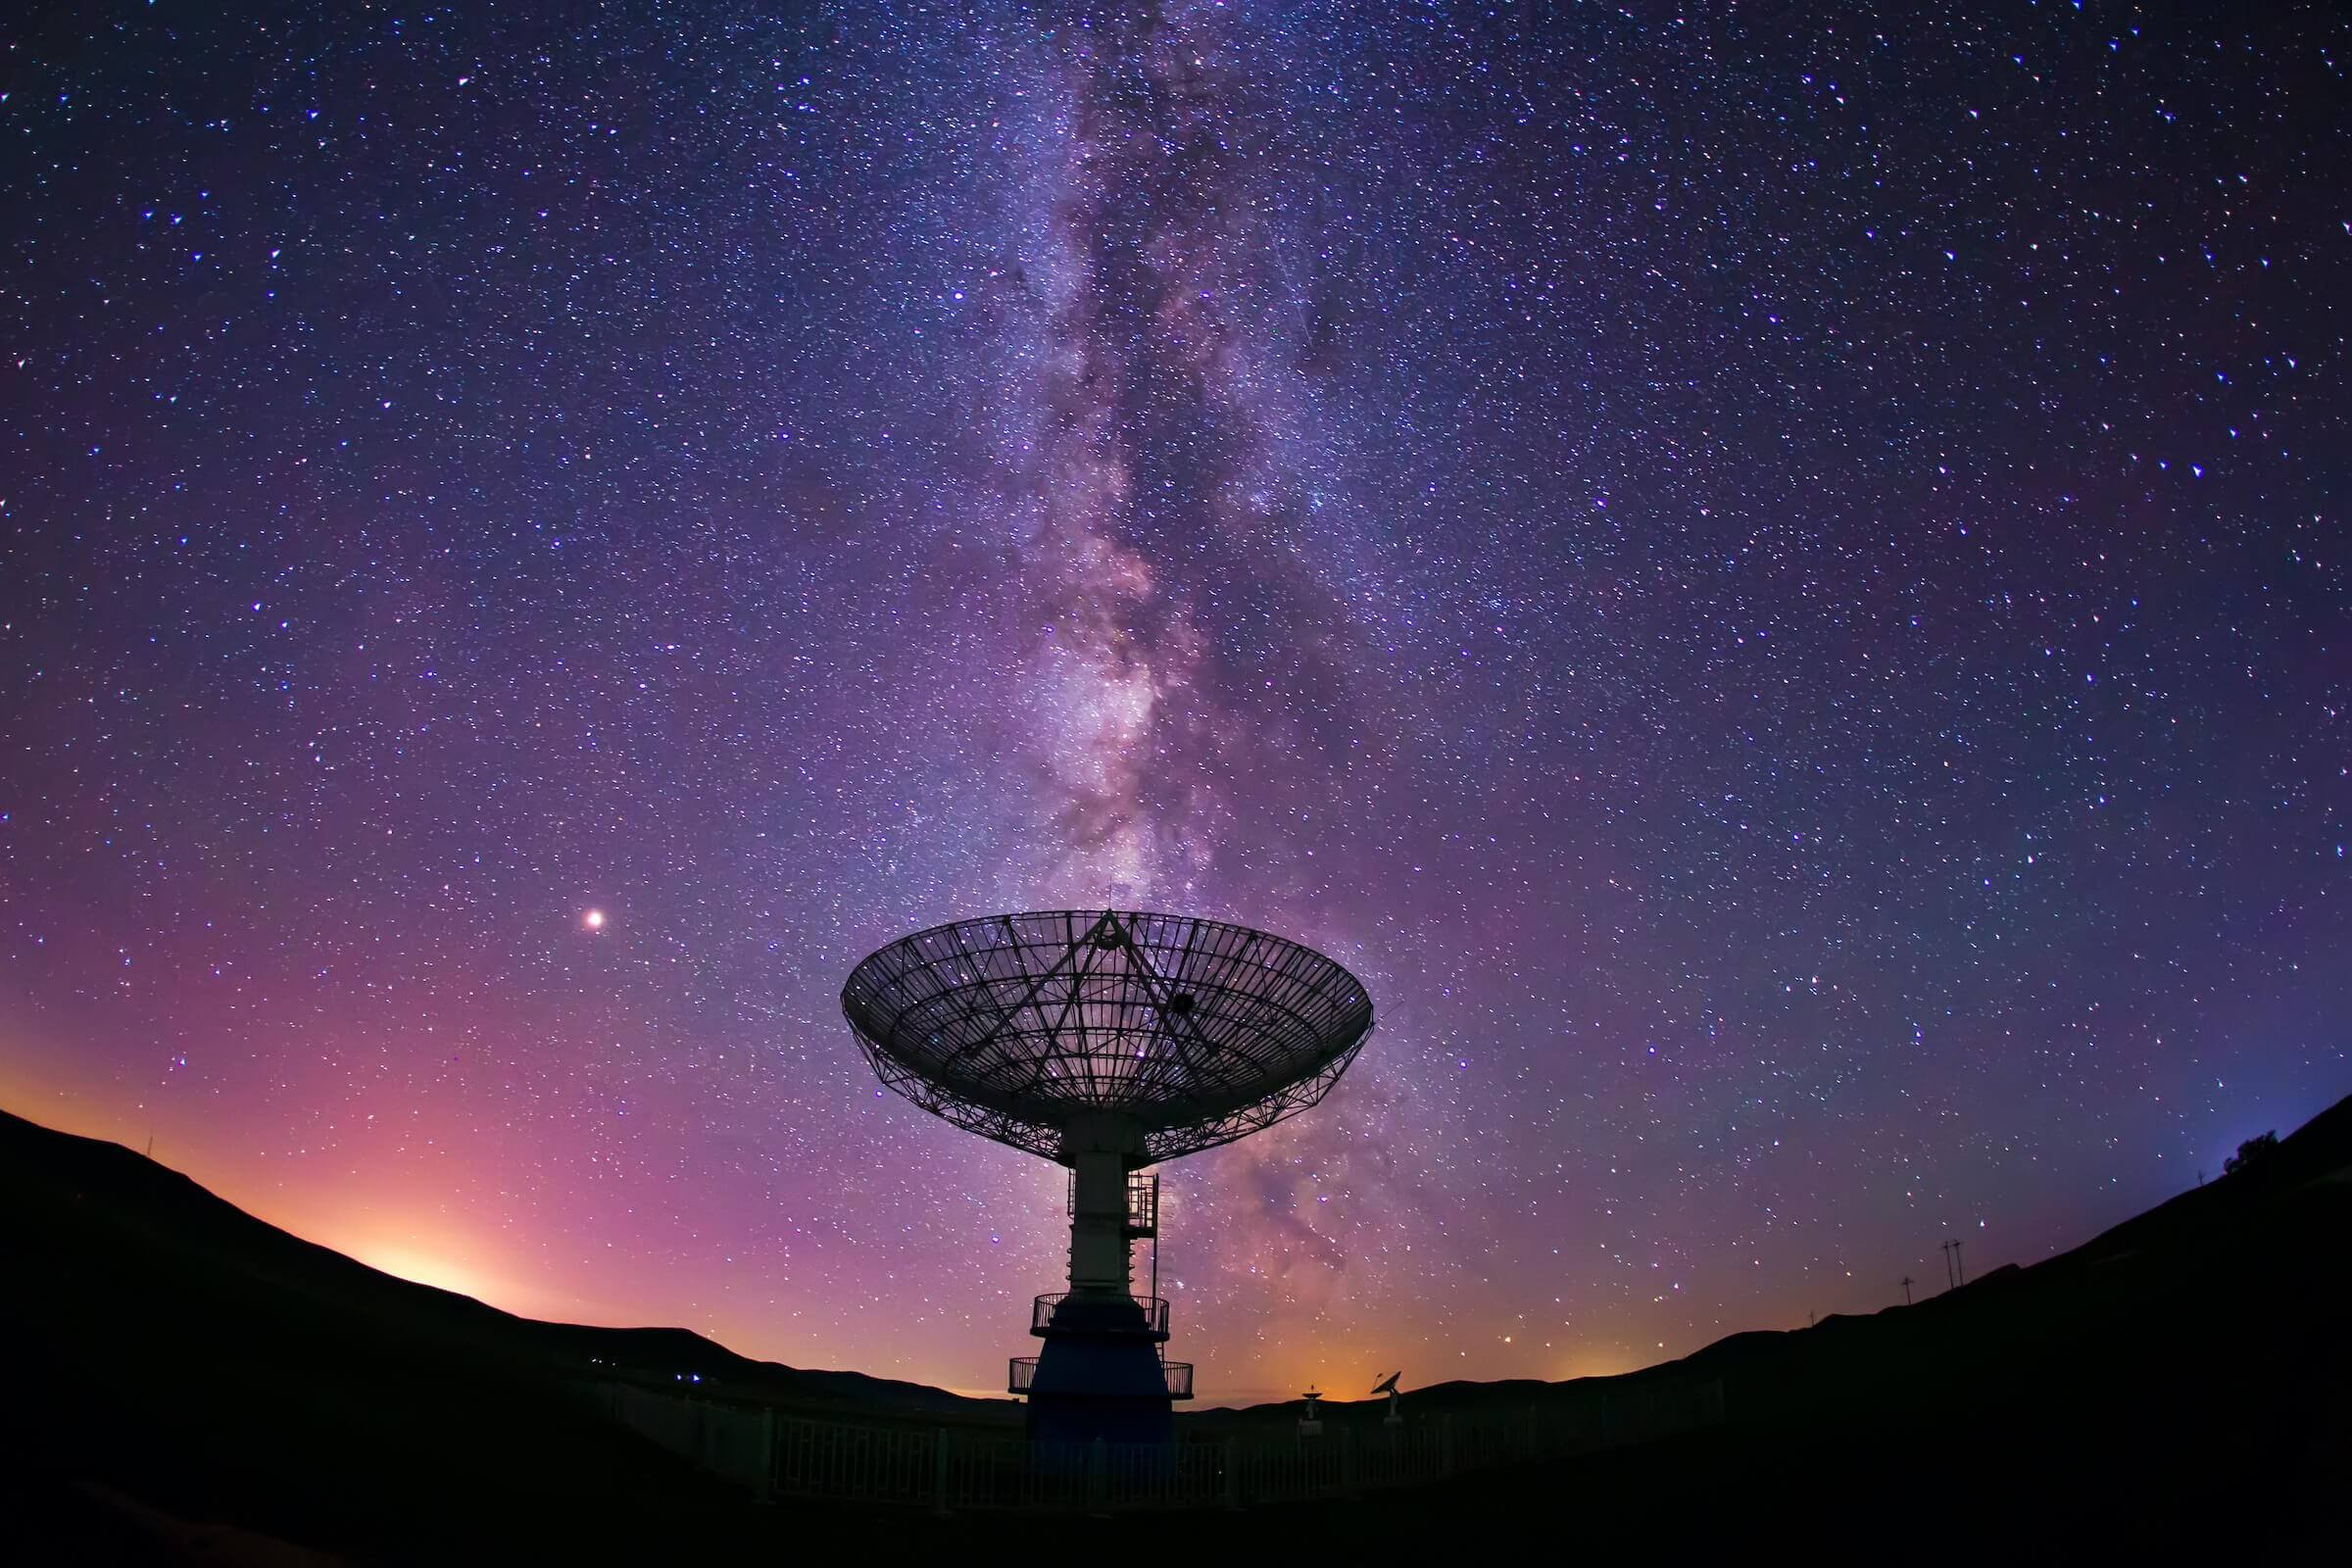 UC Berkeley is ending the SETI@Home project after 21 years